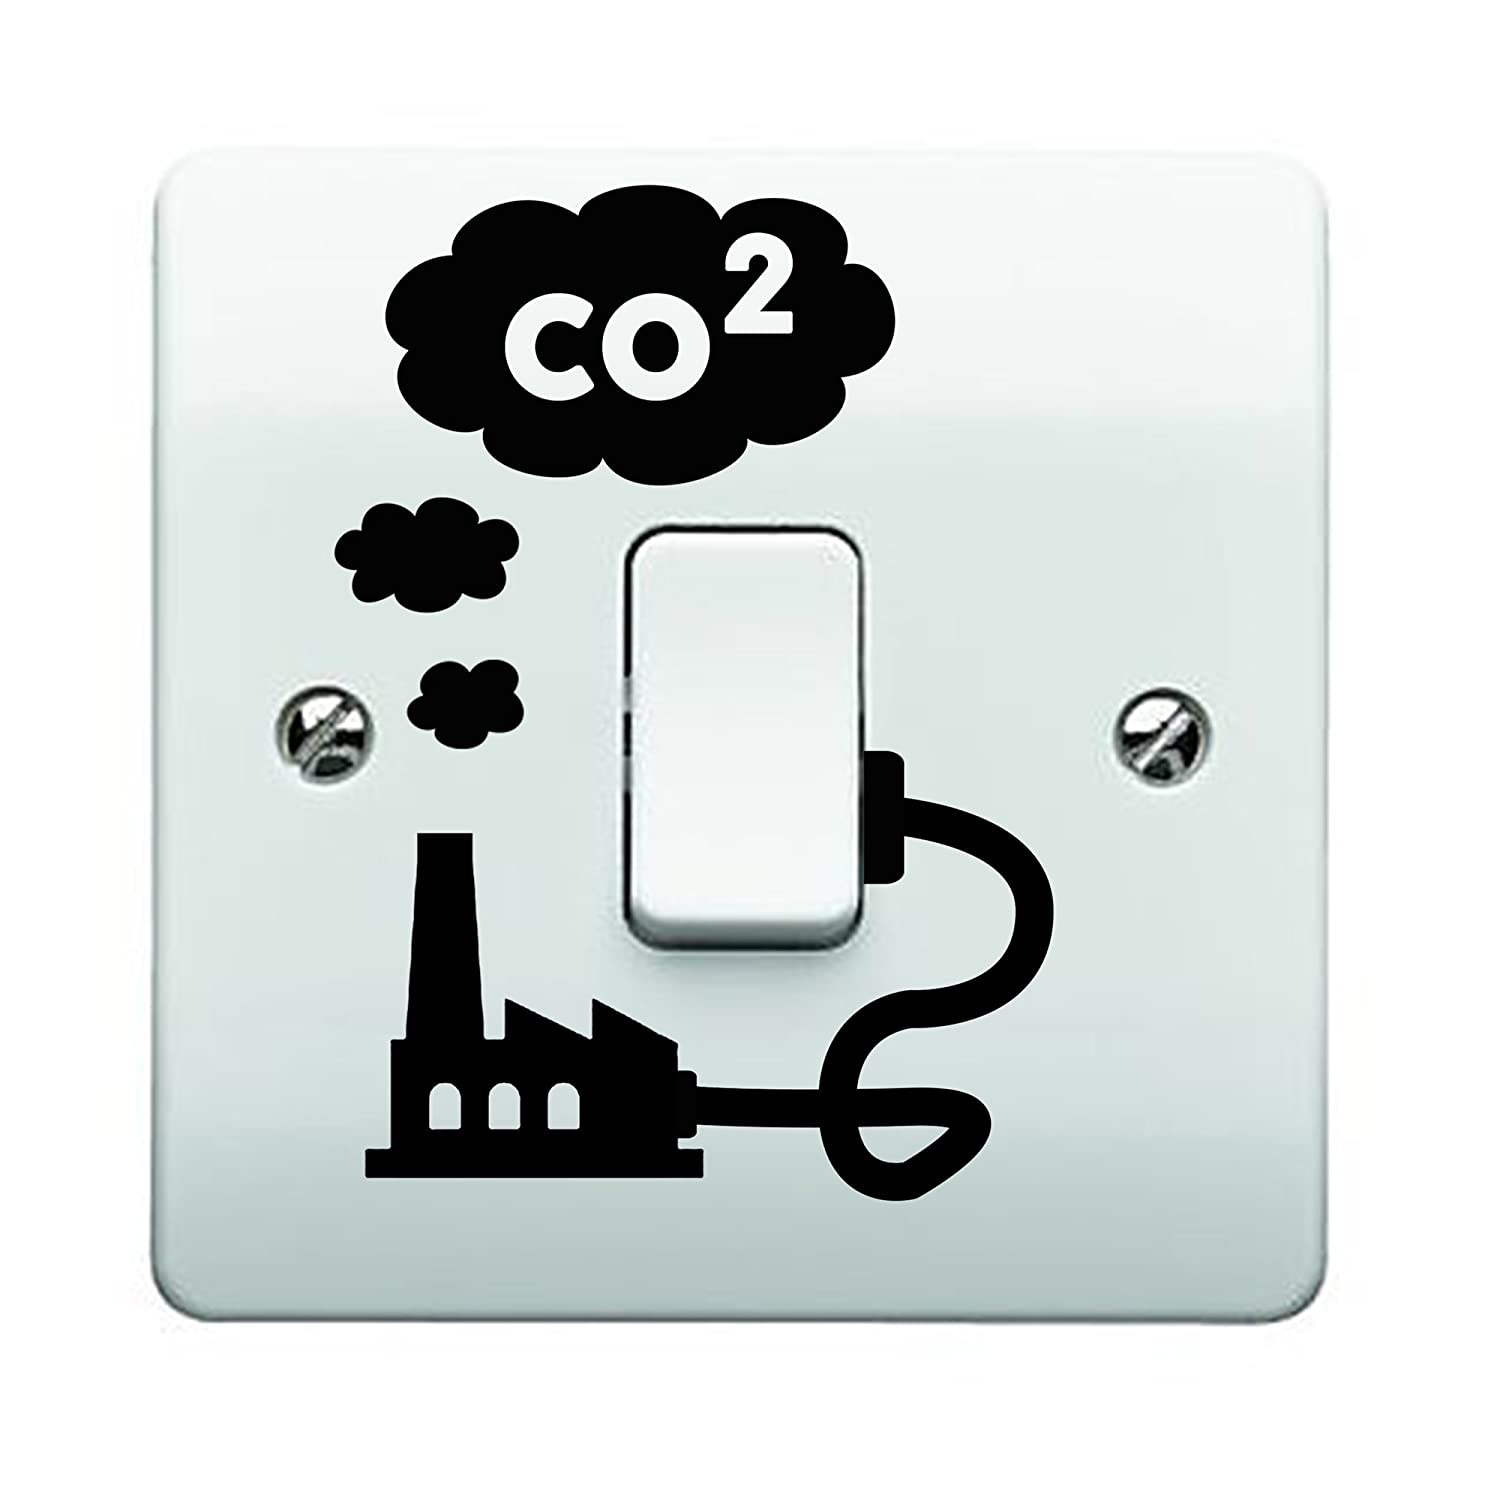 Factory CO2 Smoke Emissions Light Switch Sticker (With Cable) JustStickers®